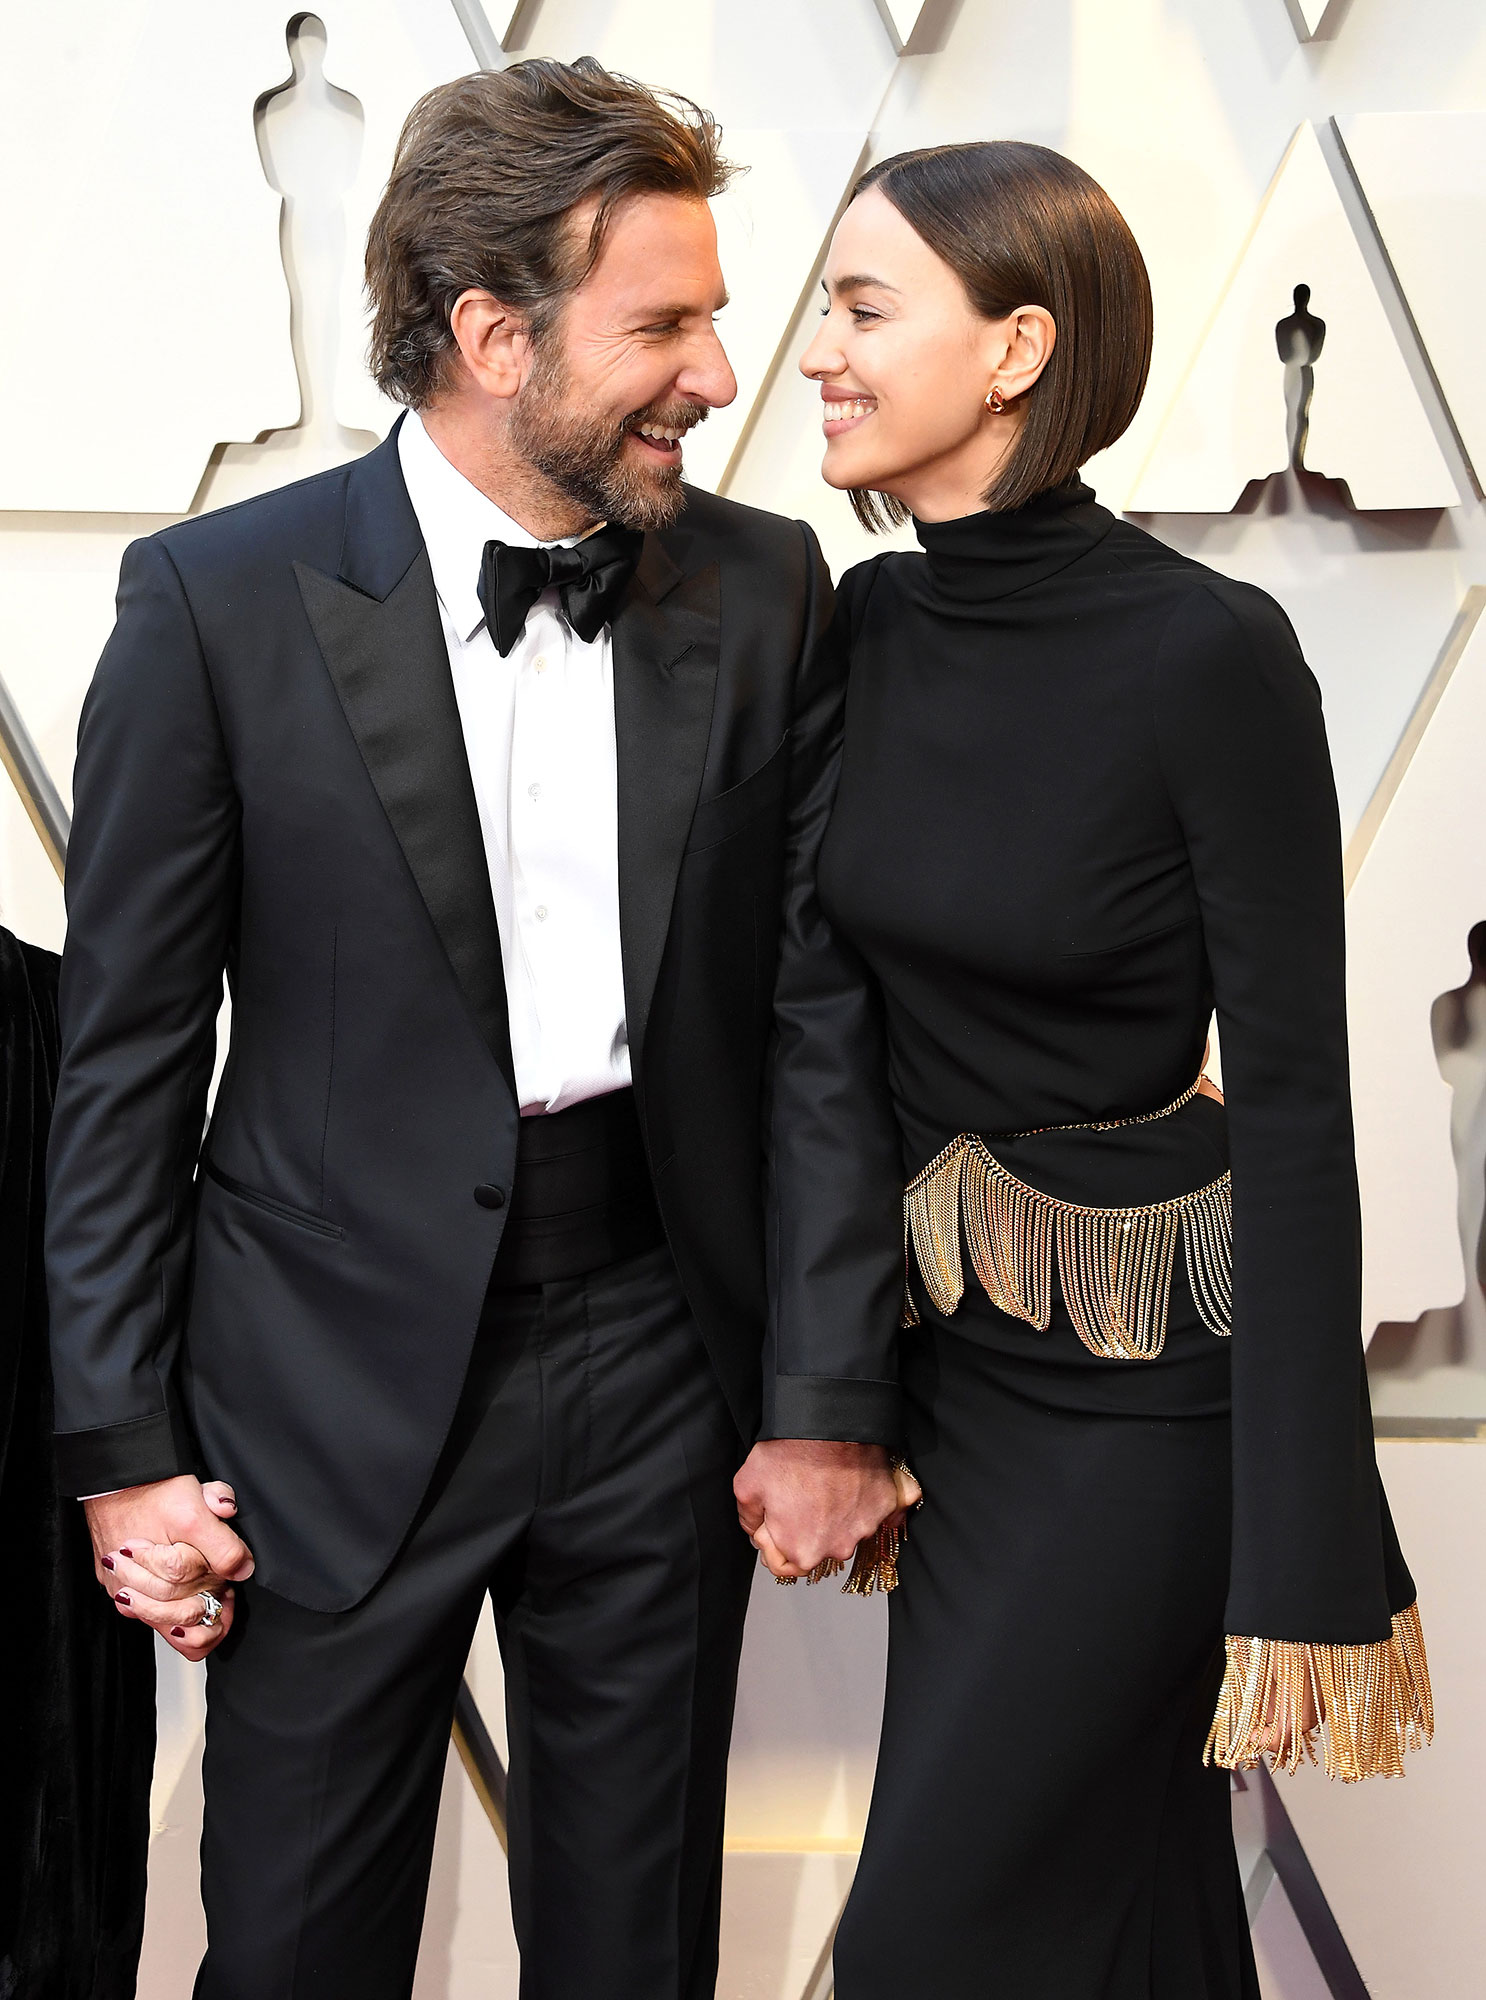 Bradley Cooper Did Not Attend the Met Gala 2019 With Irina Shayk - Bradley Cooper and Irina Shayk arrives at the 91st Annual Academy Awards at Hollywood and Highland on February 24, 2019 in Hollywood, California.